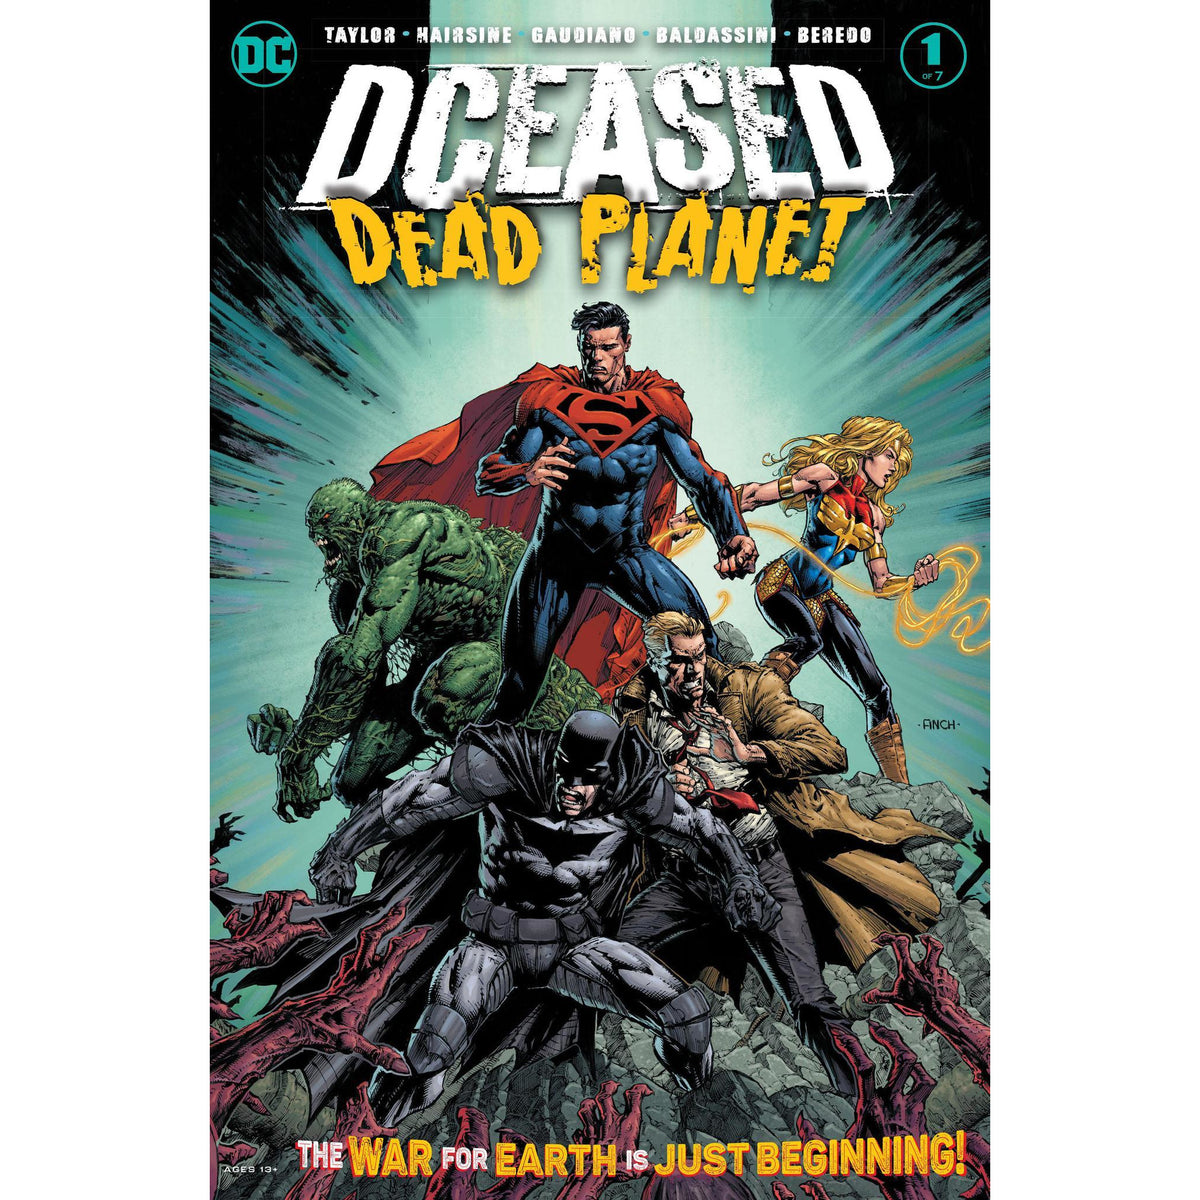 DC COMICS BUNDLE - 9 COMICS - NEW RELEASES - BATMAN SUPERMAN FLASH DCEASED AND MORE